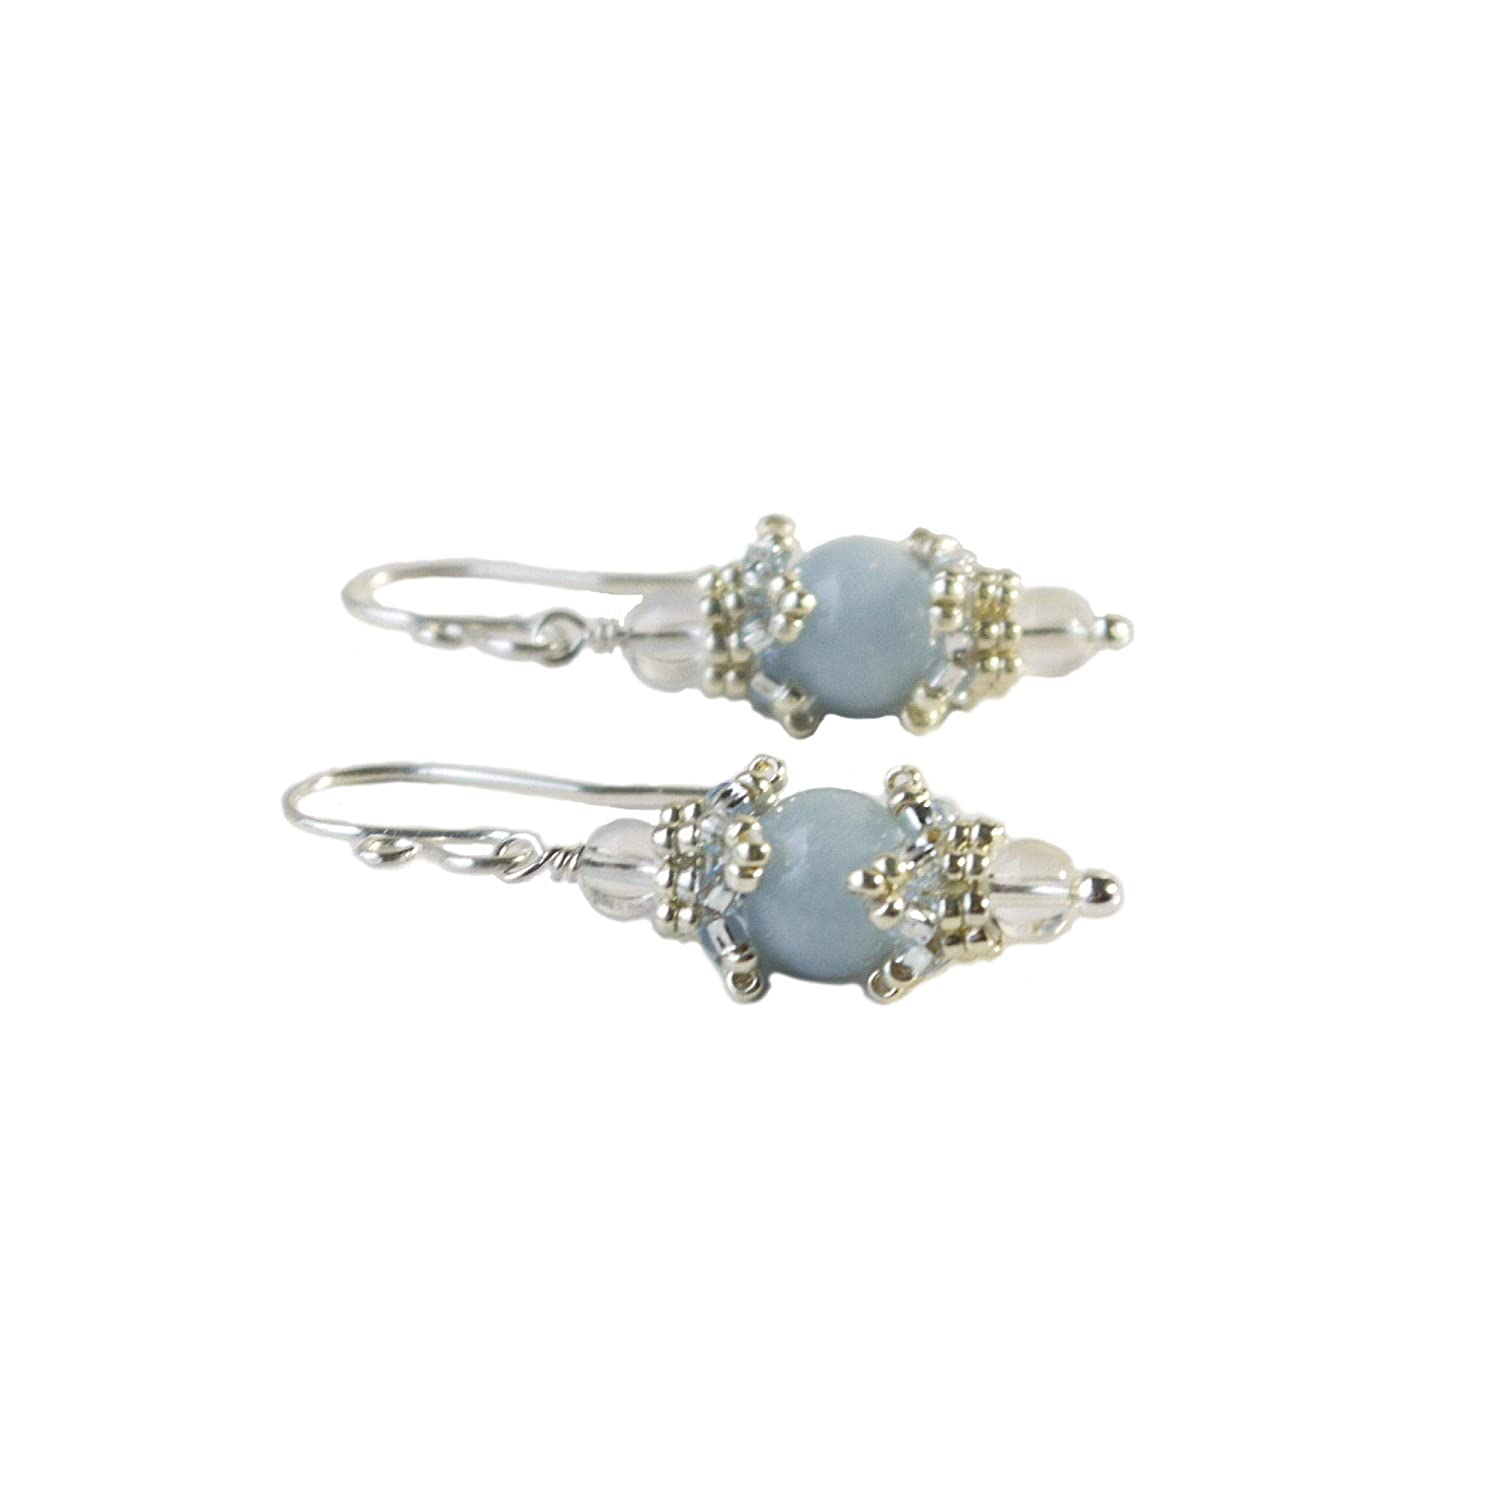 Handmade silver sterling earrings with natural angelite  stone.